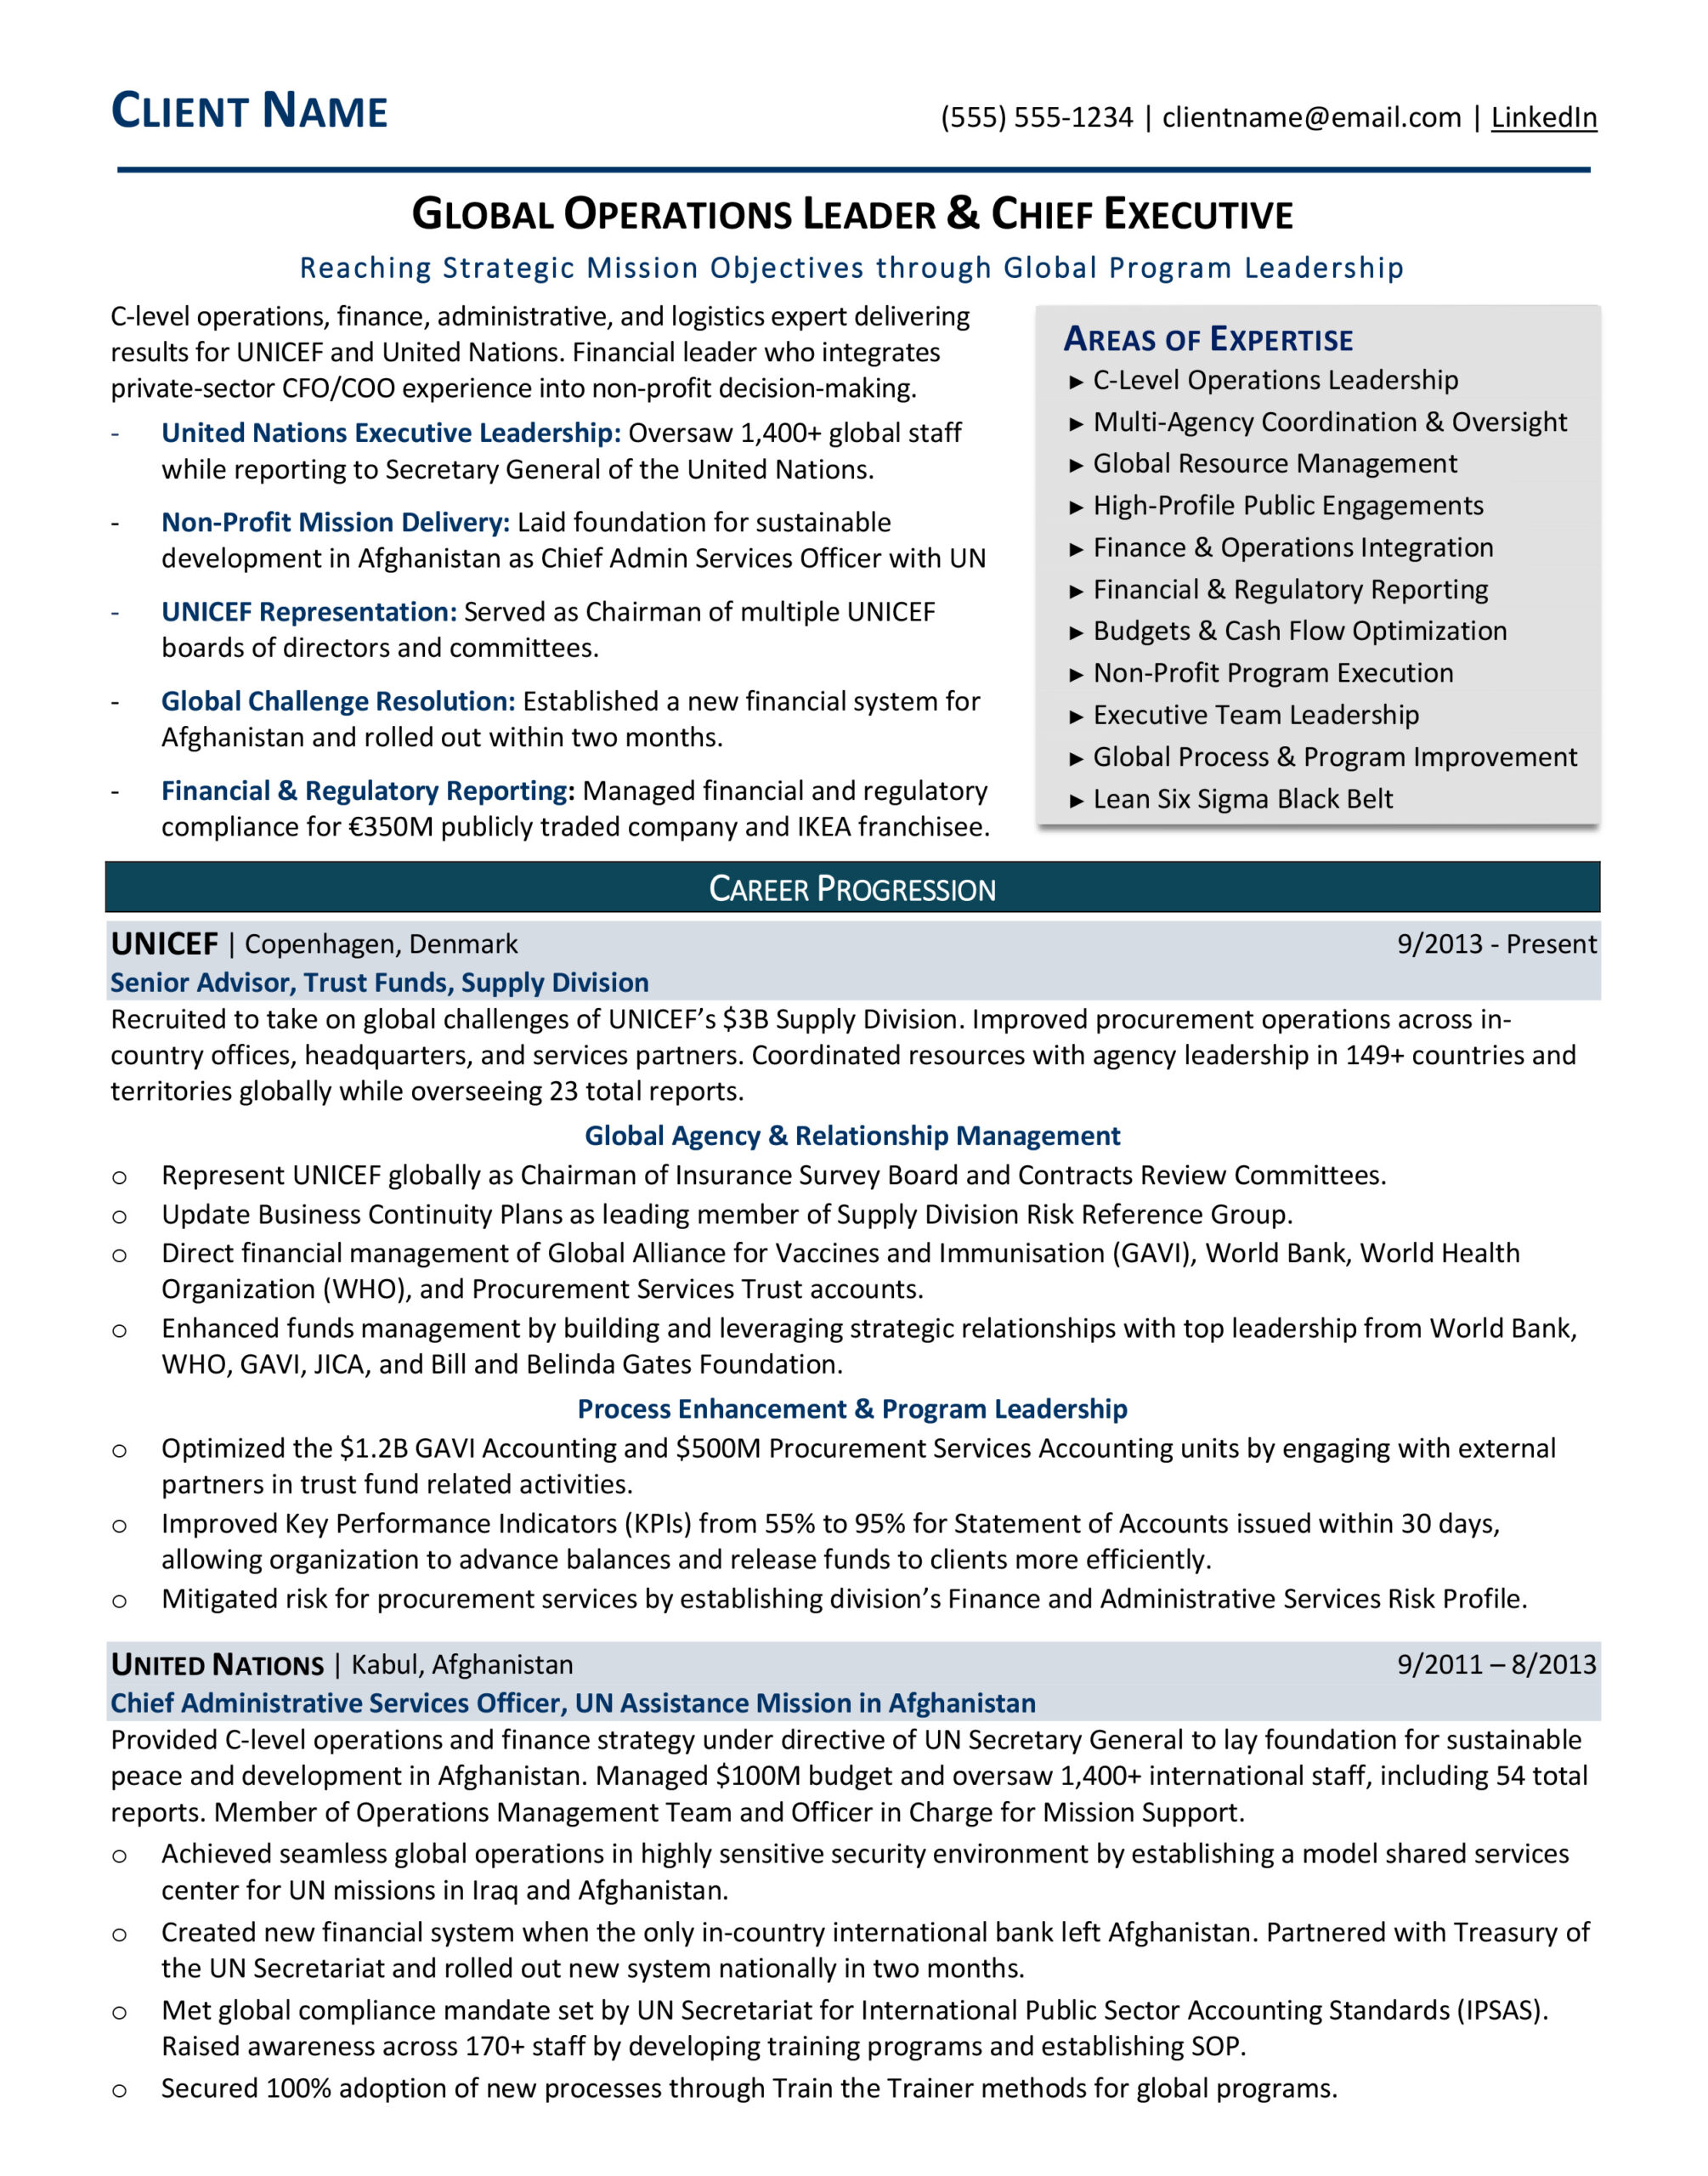 sample resume rp career with project details executive movie skills for construction Resume Sample Resume With Project Details